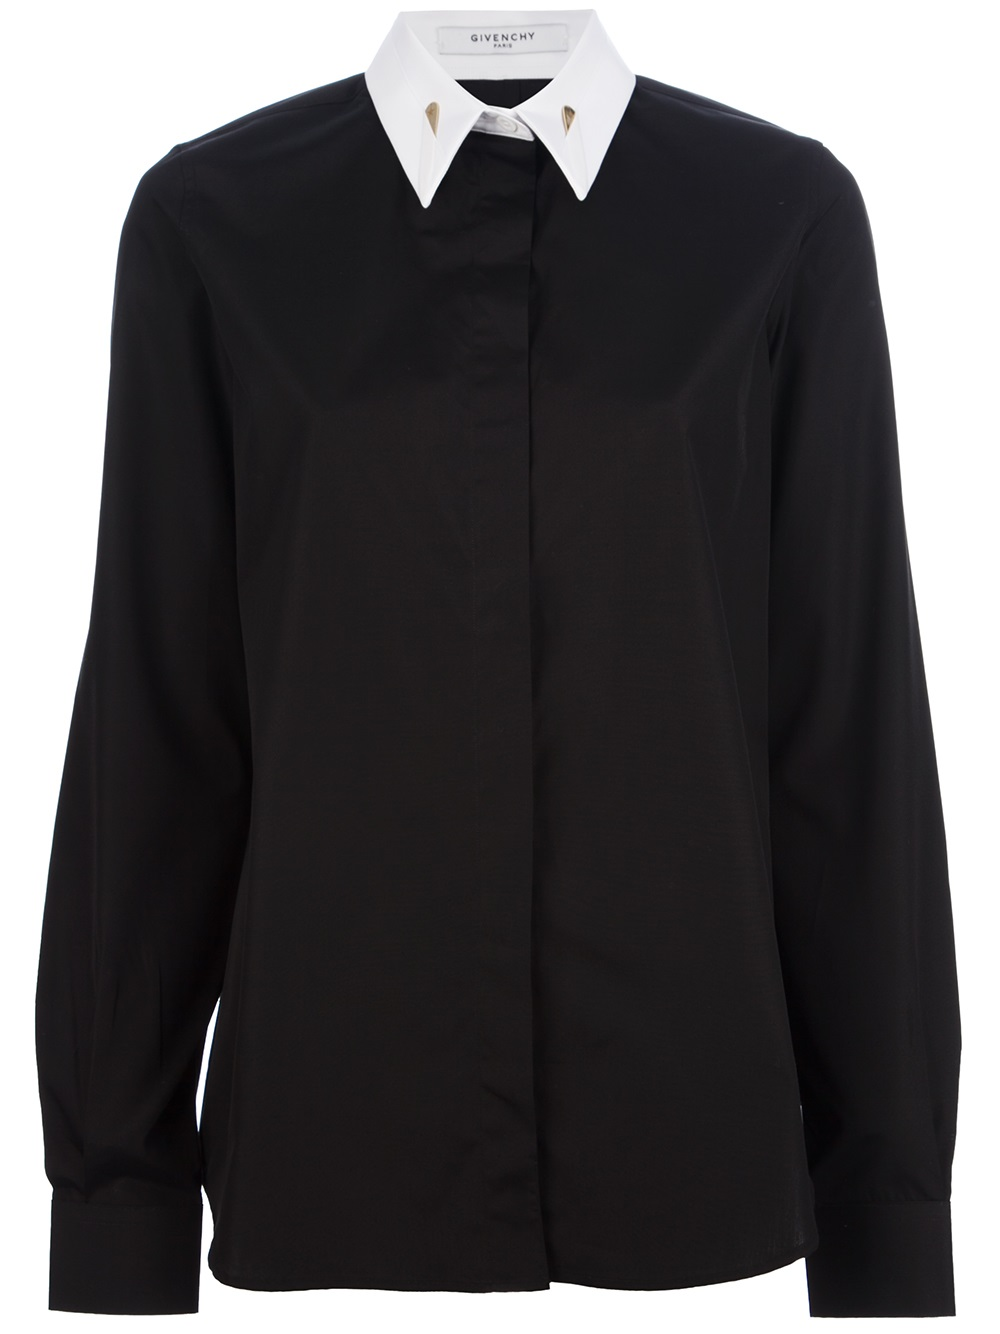 Black Shirt White Collar Womens | Is Shirt